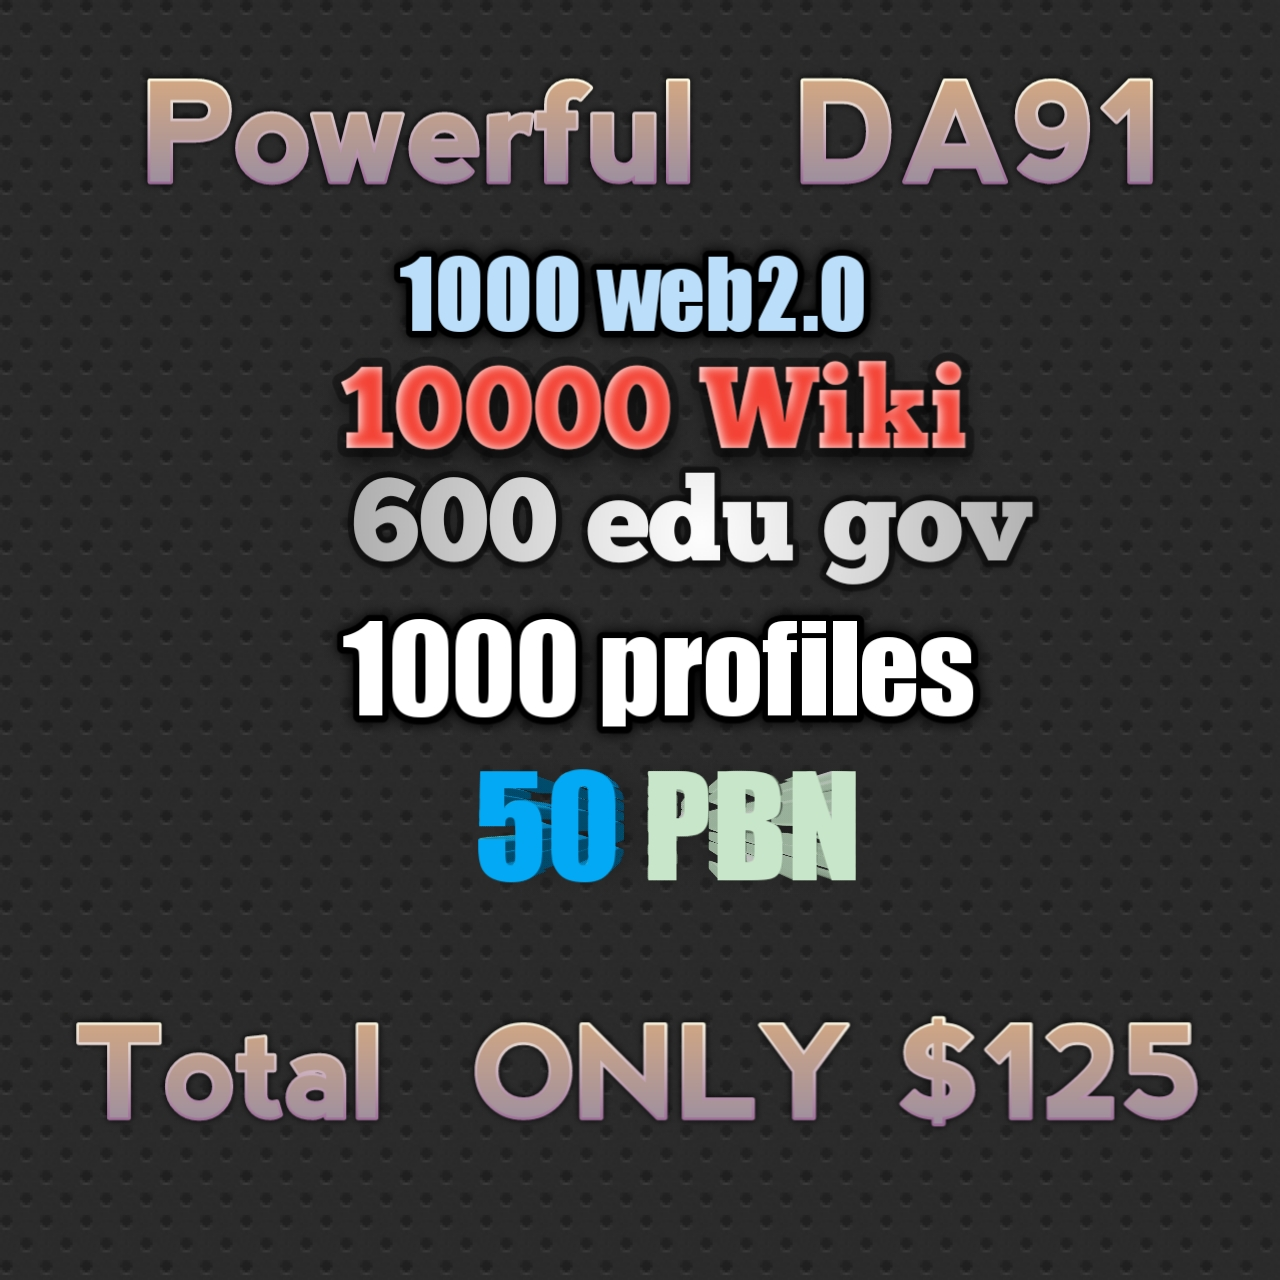 HIGH DA91+1000+web2.0+10000wiki+600edu+ 50 PBN +1000 profile+all exclusive Back-links